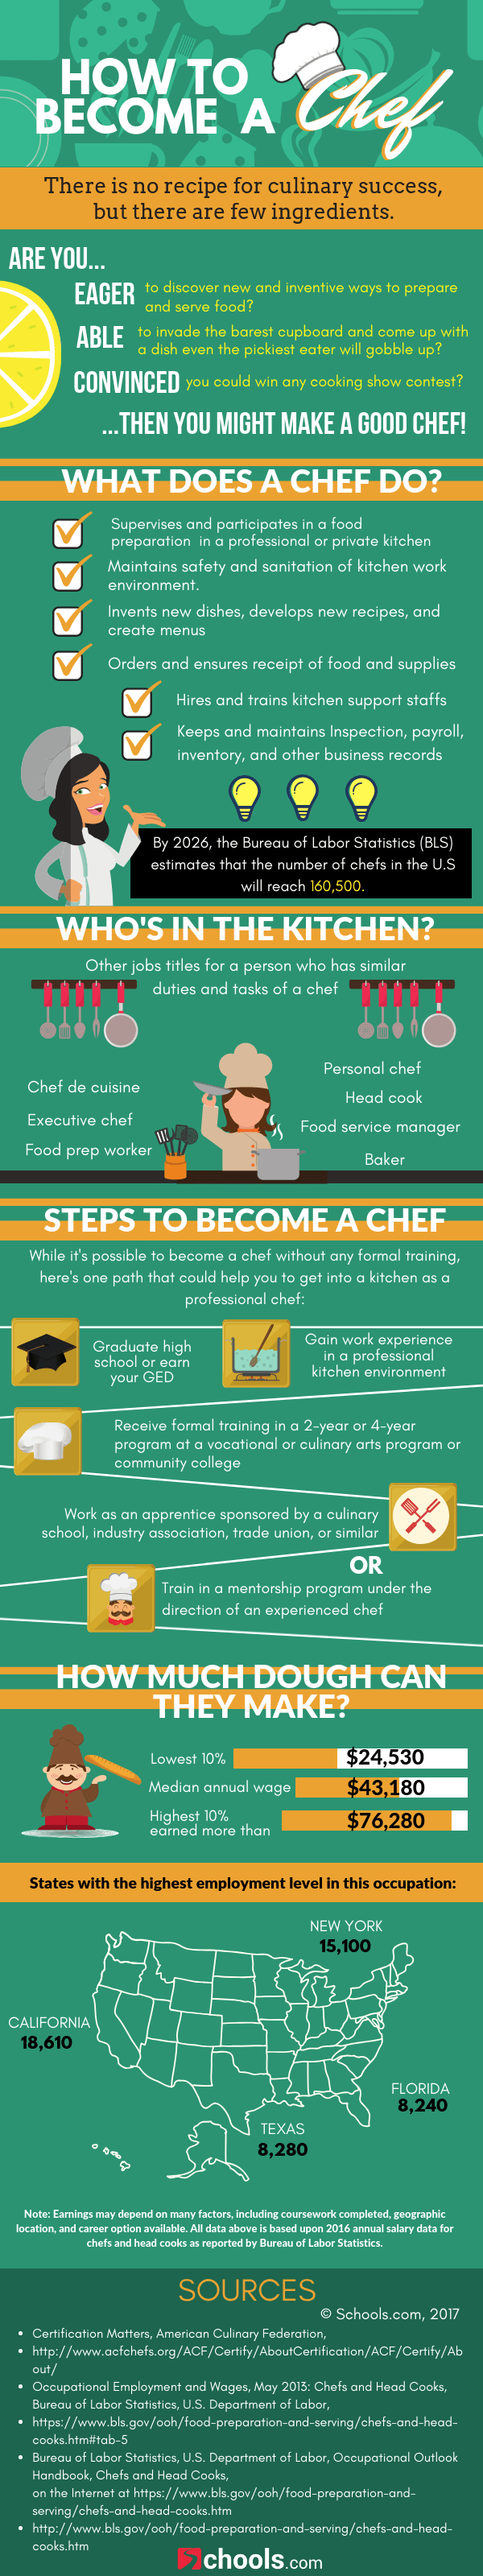 Chef-in-Waiting? The Route to Becoming a Professional Chef - Infographic